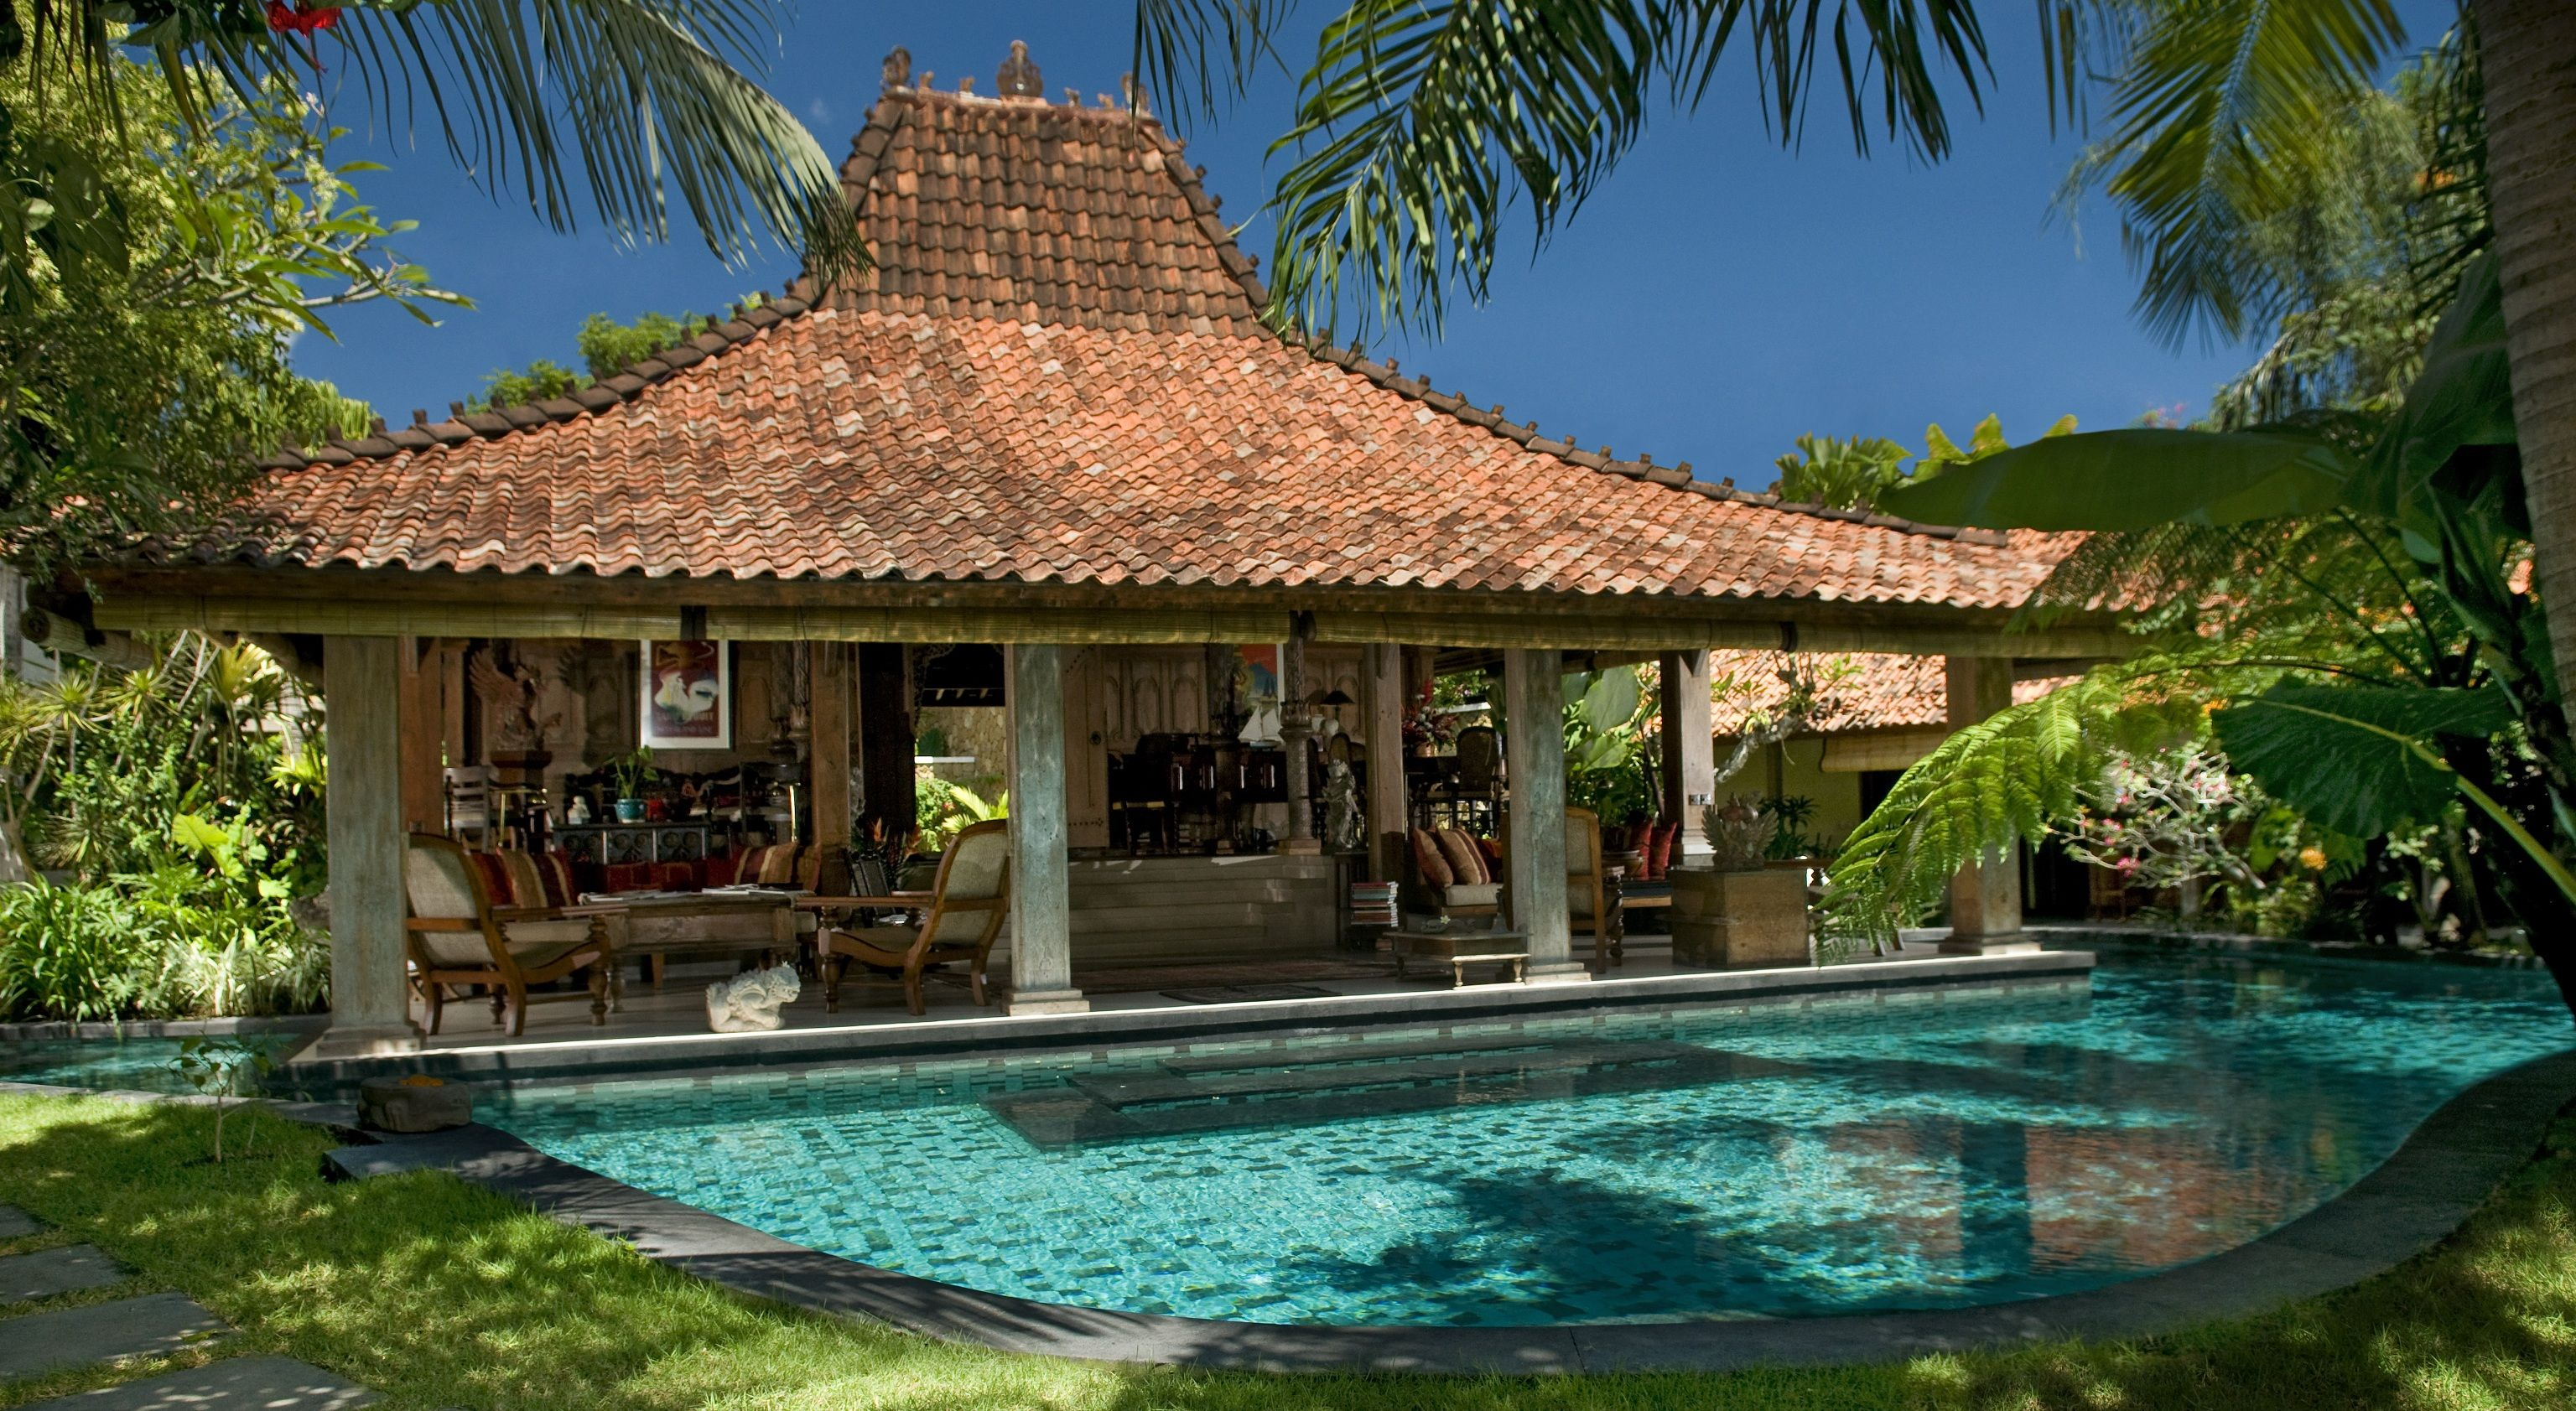 Bali inspired decorating for your home tropical bali for Pool design bali